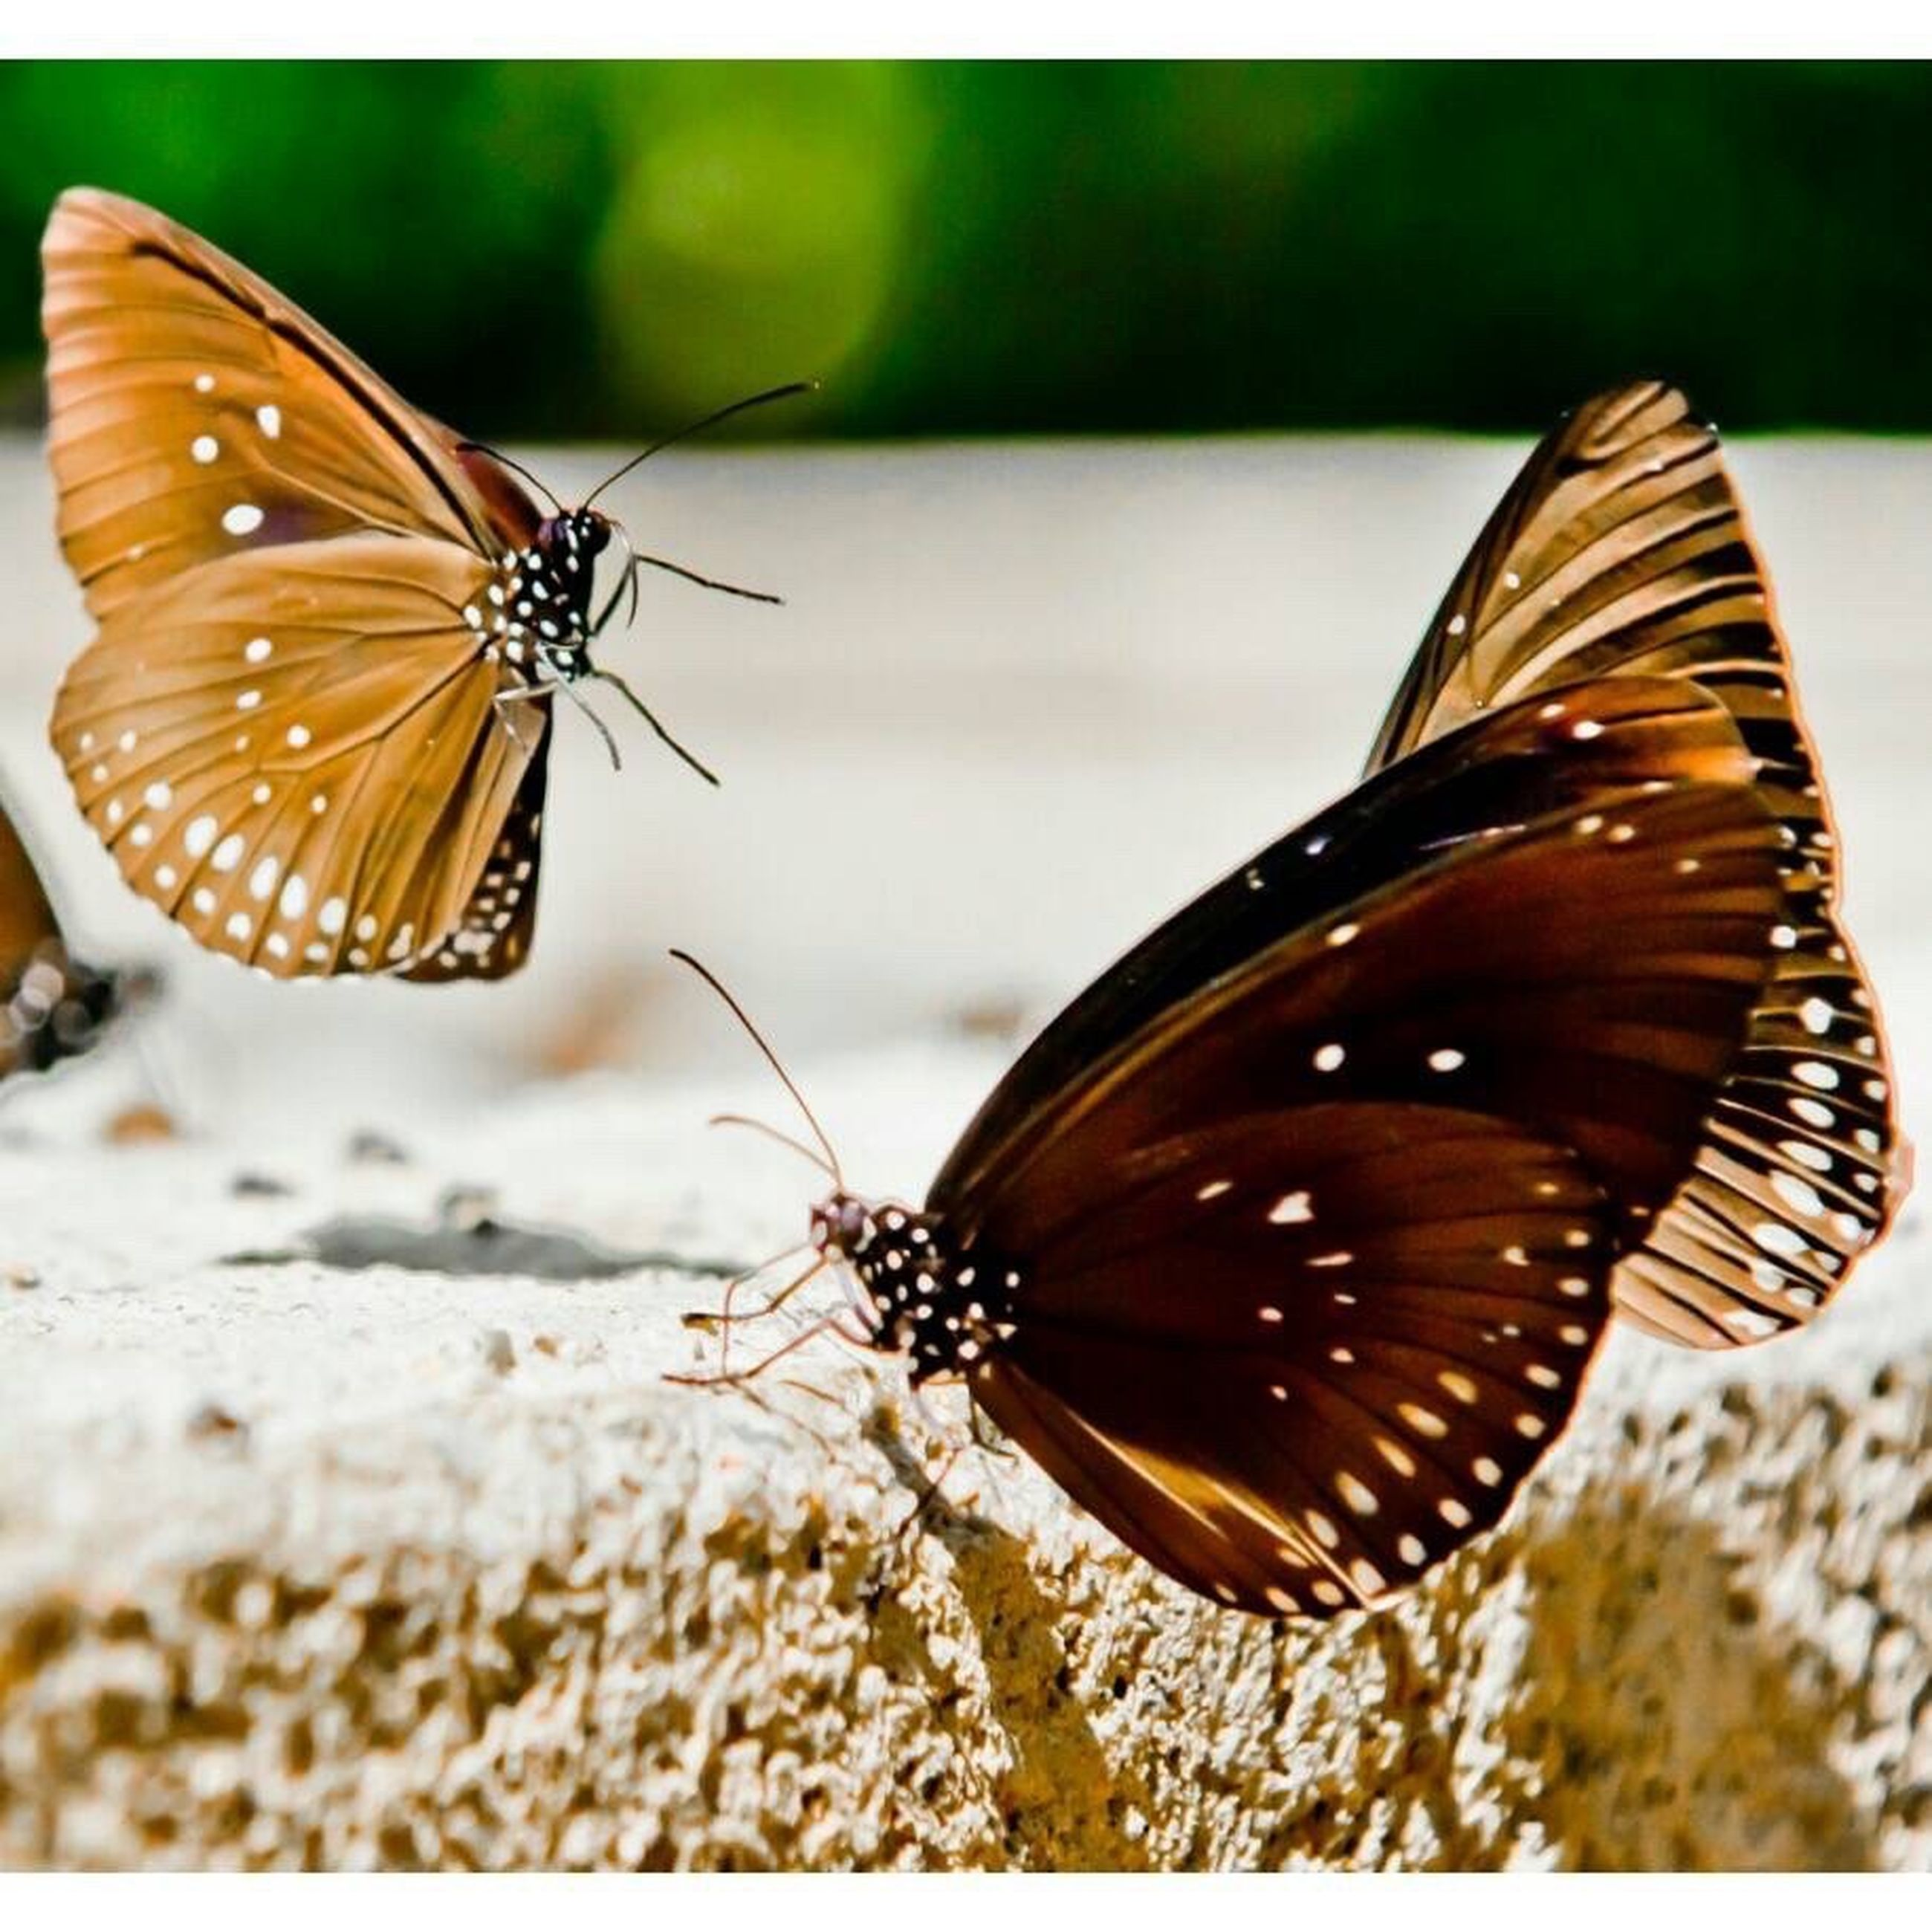 animals in the wild, insect, animal themes, one animal, wildlife, butterfly - insect, butterfly, animal wing, close-up, animal markings, animal antenna, spread wings, focus on foreground, natural pattern, nature, perching, beauty in nature, full length, zoology, pollination